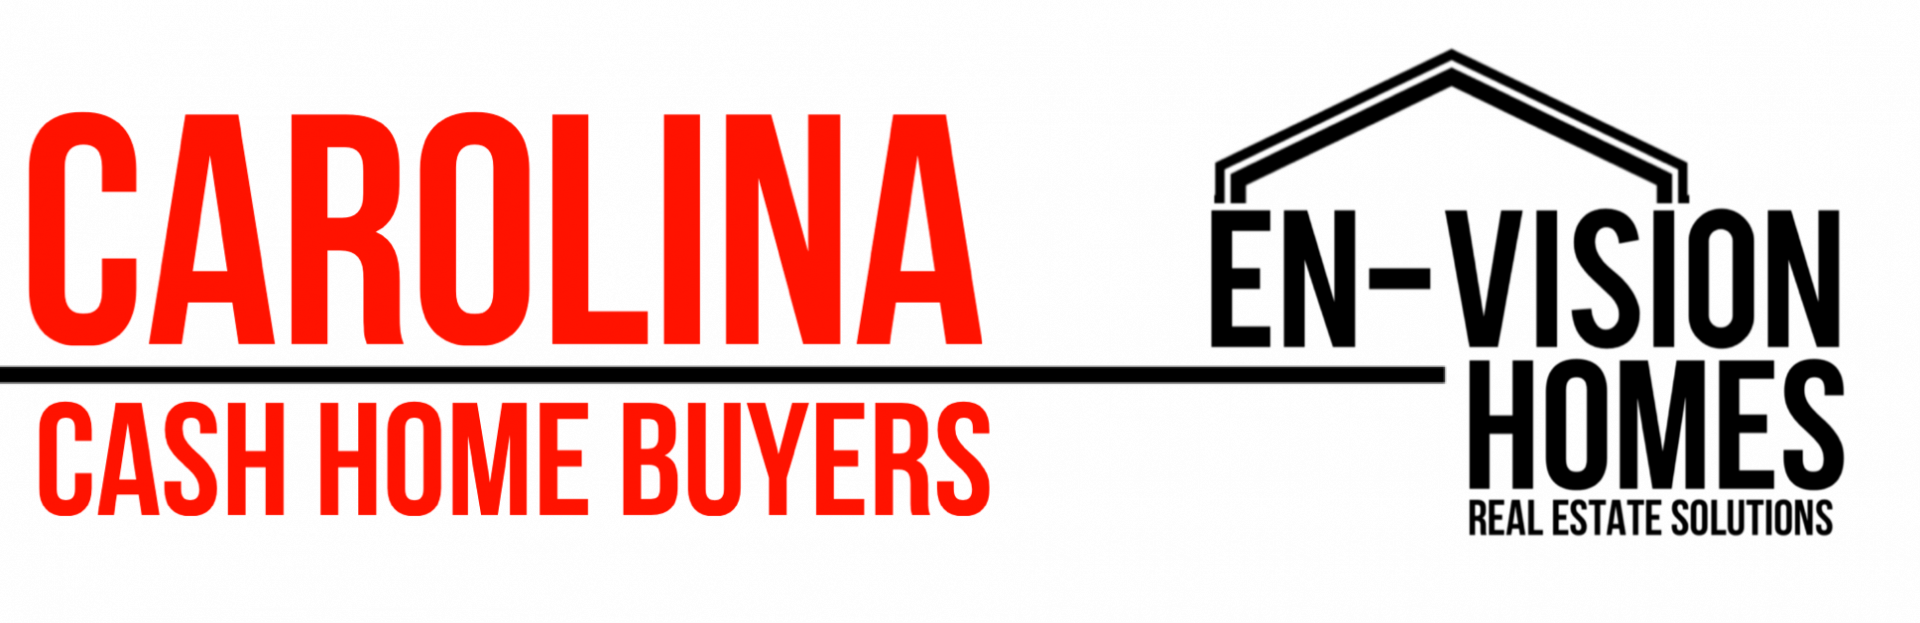 CASH HOME BUYERS CAROLINA logo